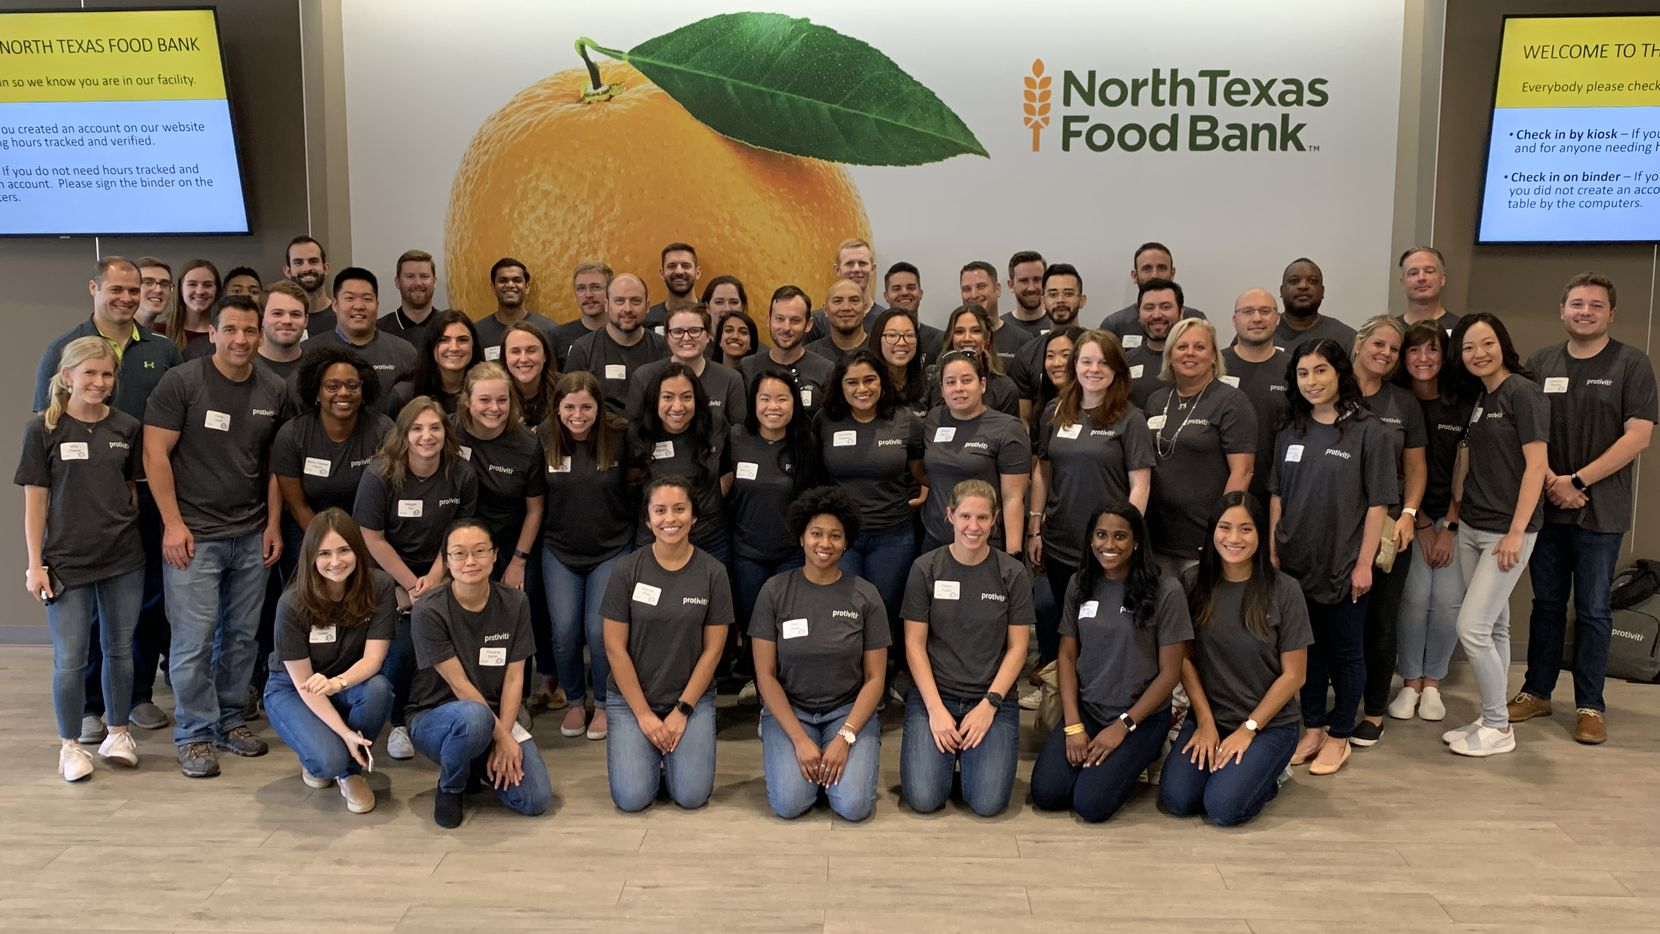 Protiviti workers pause for a photo at one of the company's i on hunger meal-packing events to support the North Texas Food Bank.